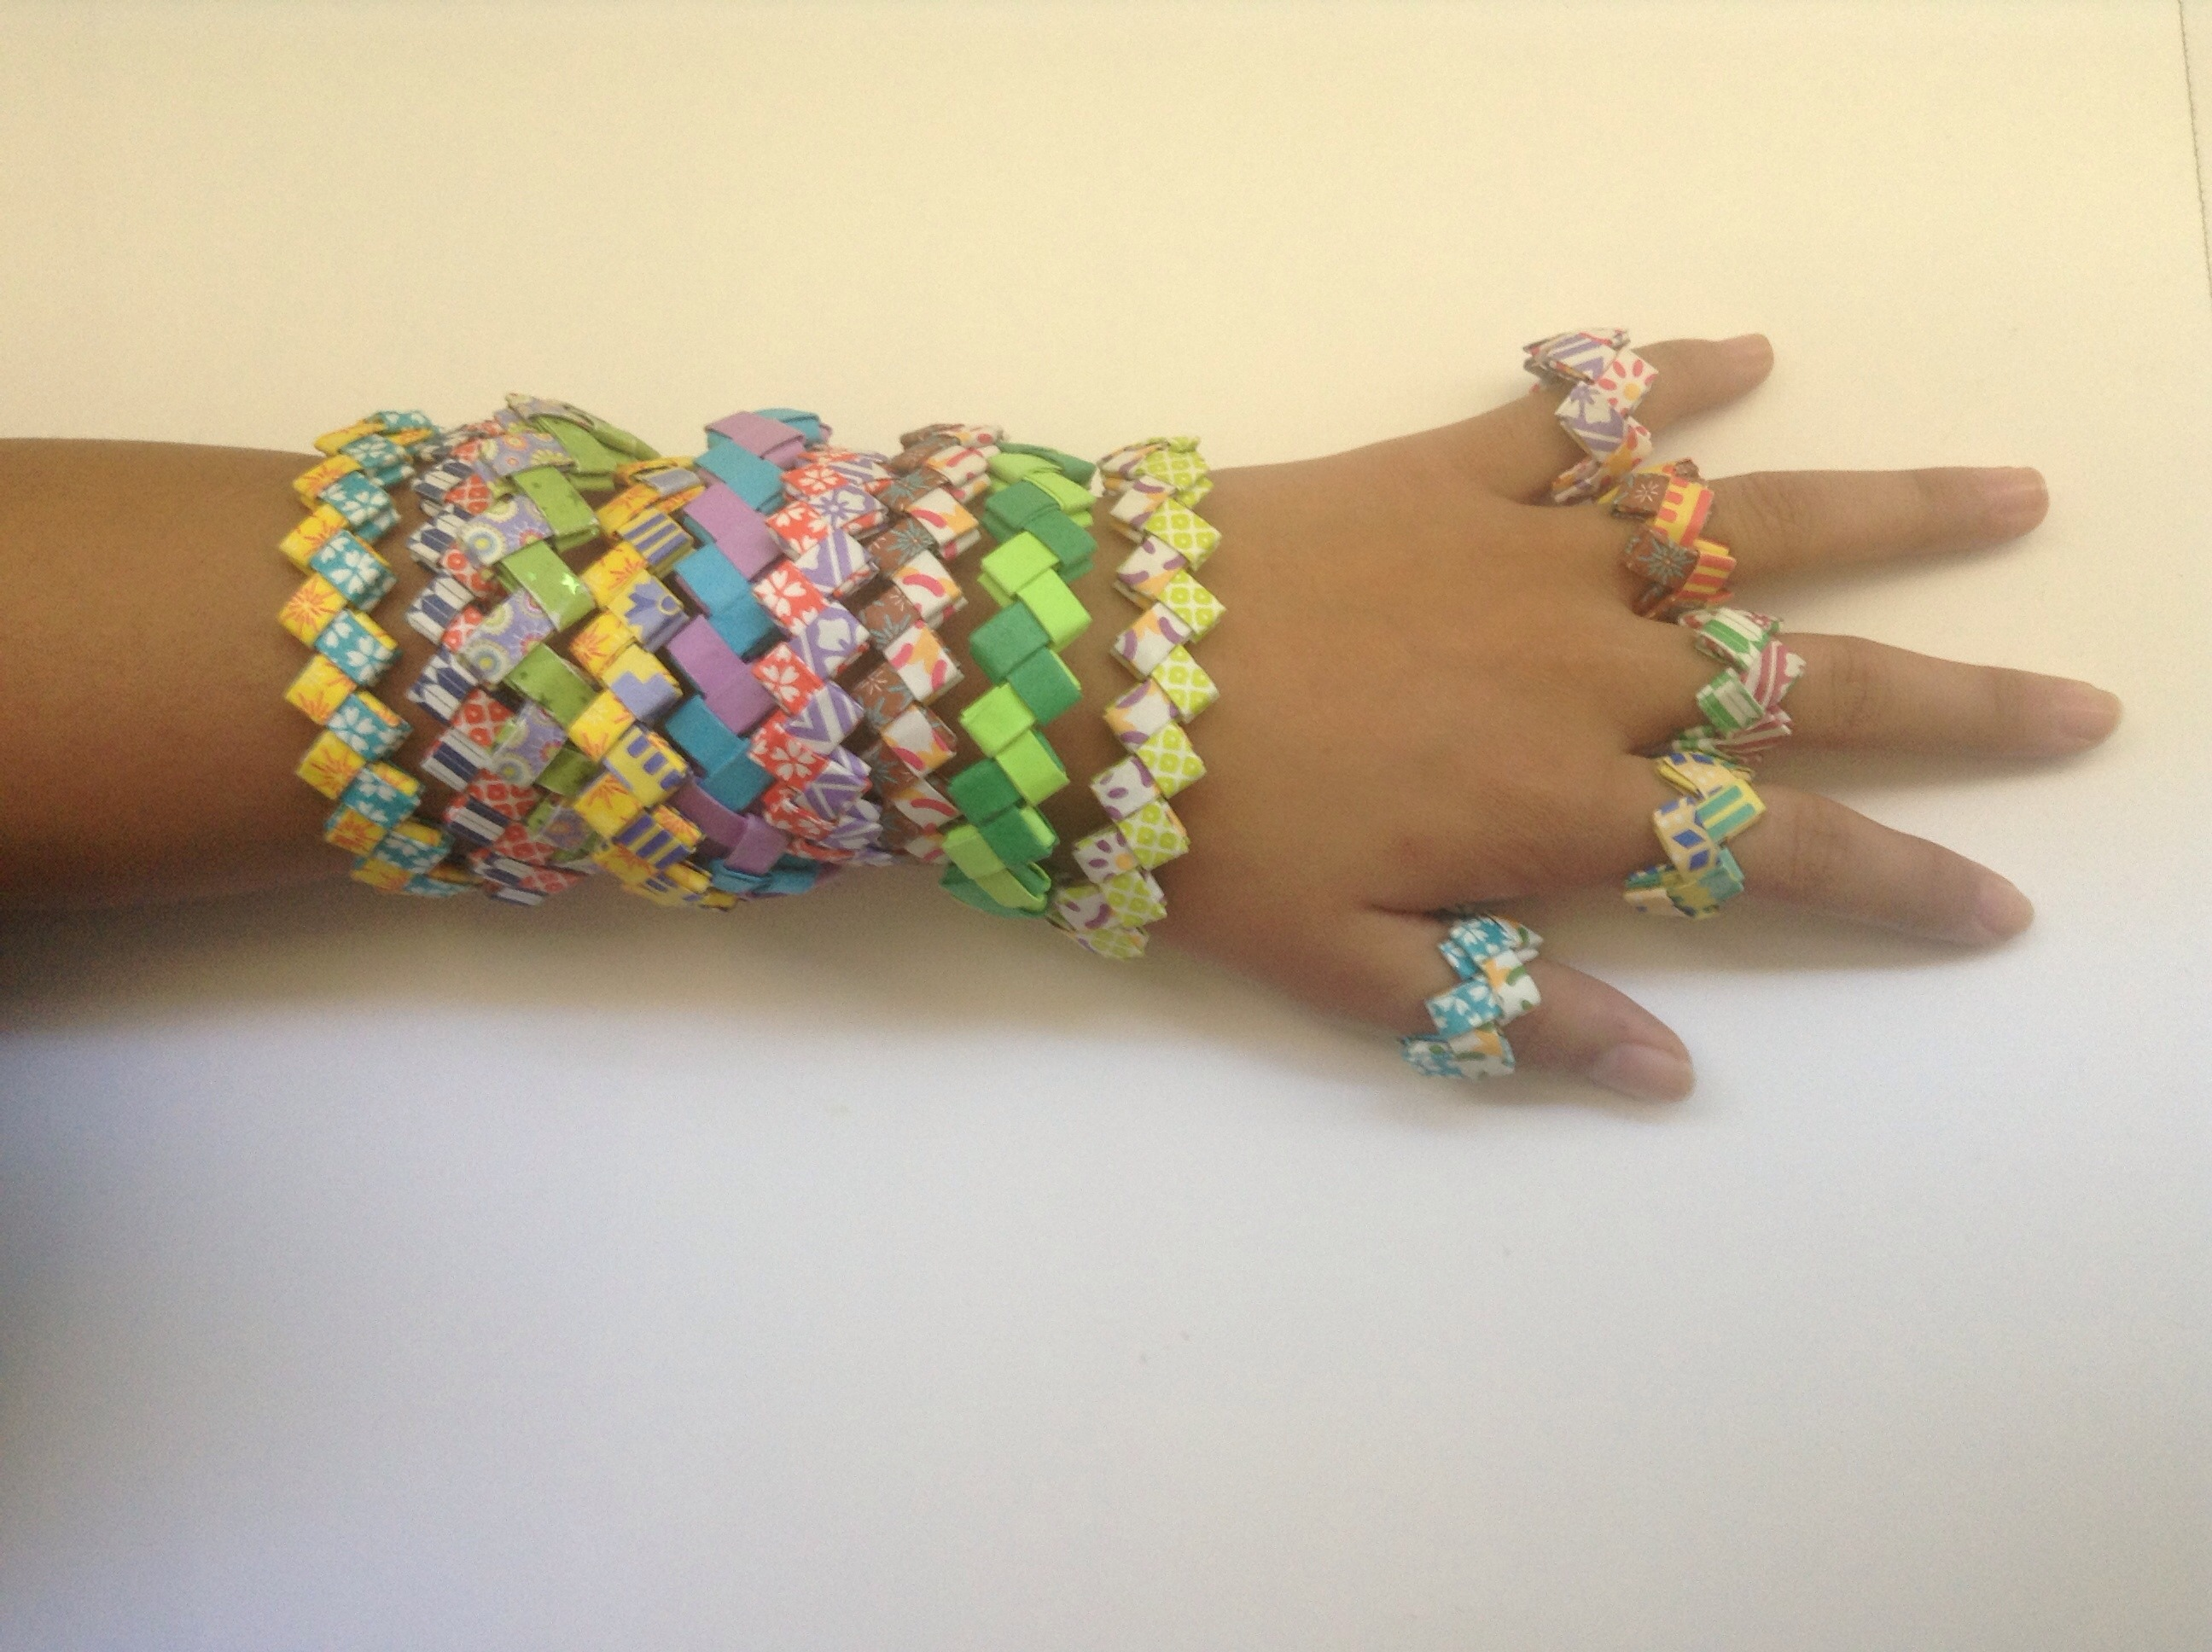 paper bracelets Paper beads 64k likes paperbeadsorg by janice mae, is a website blog dedicated to the handcraft of recycling paper into beautiful jewelry.